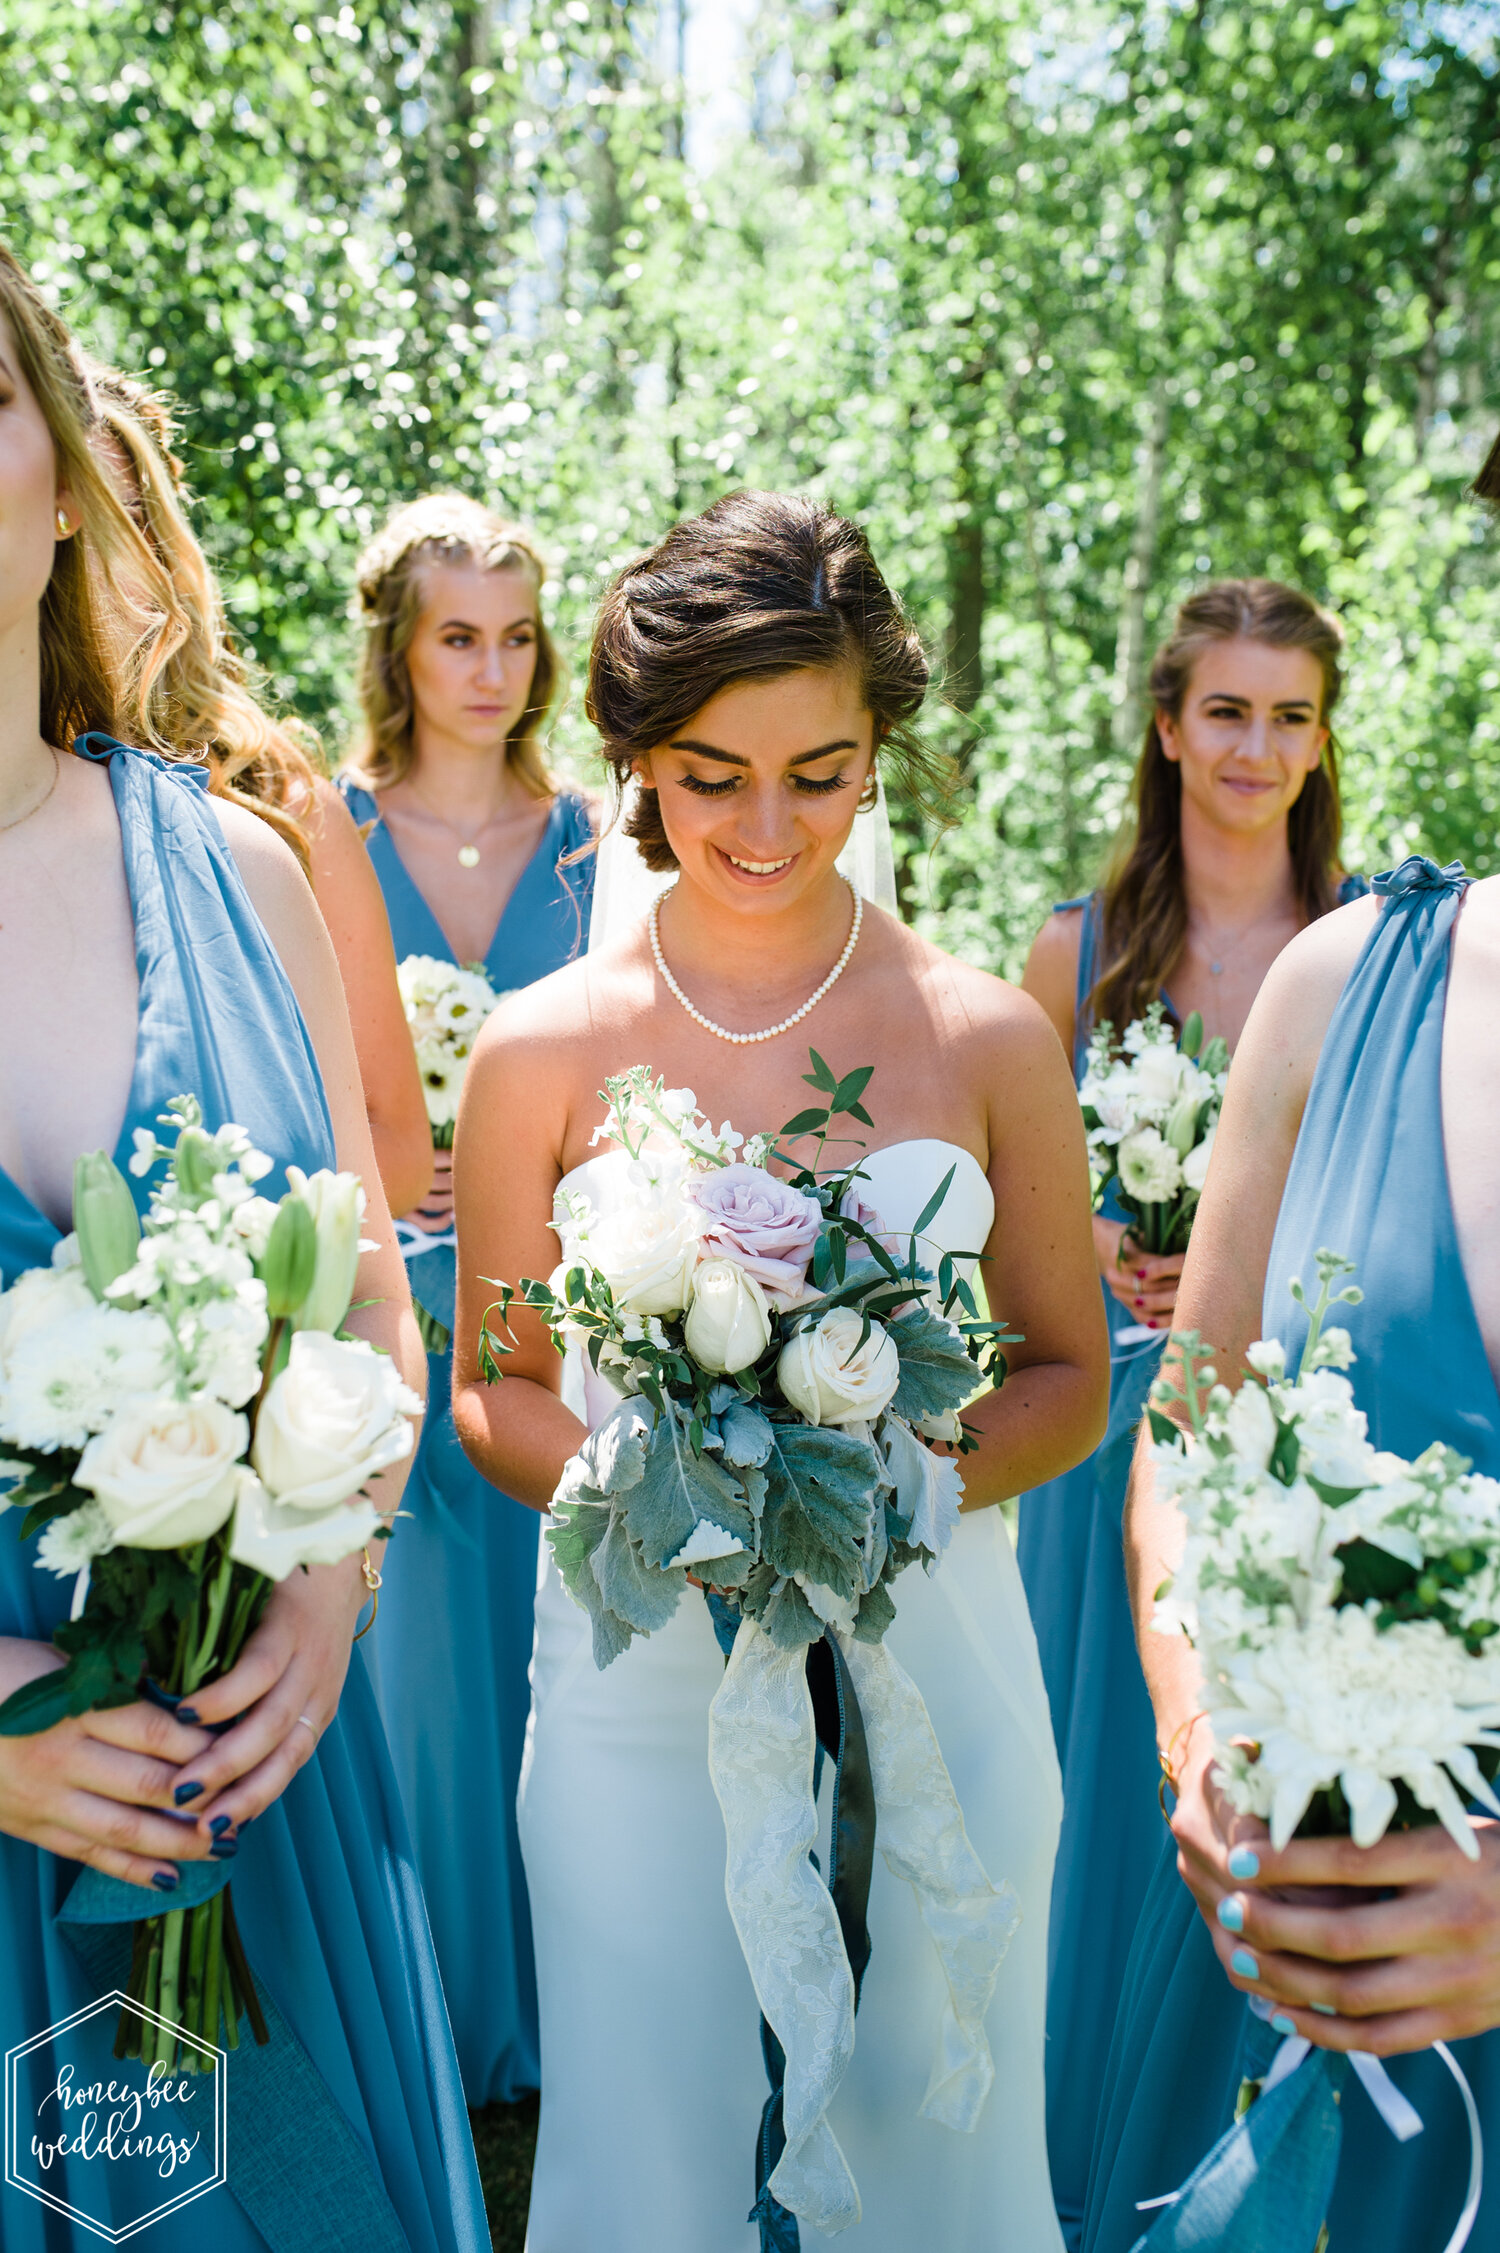 057Glacier National Park Wedding_Glacier Outdoor Center_Honeybee Weddings_Anna & Seth_July 21, 2019-2025.jpg